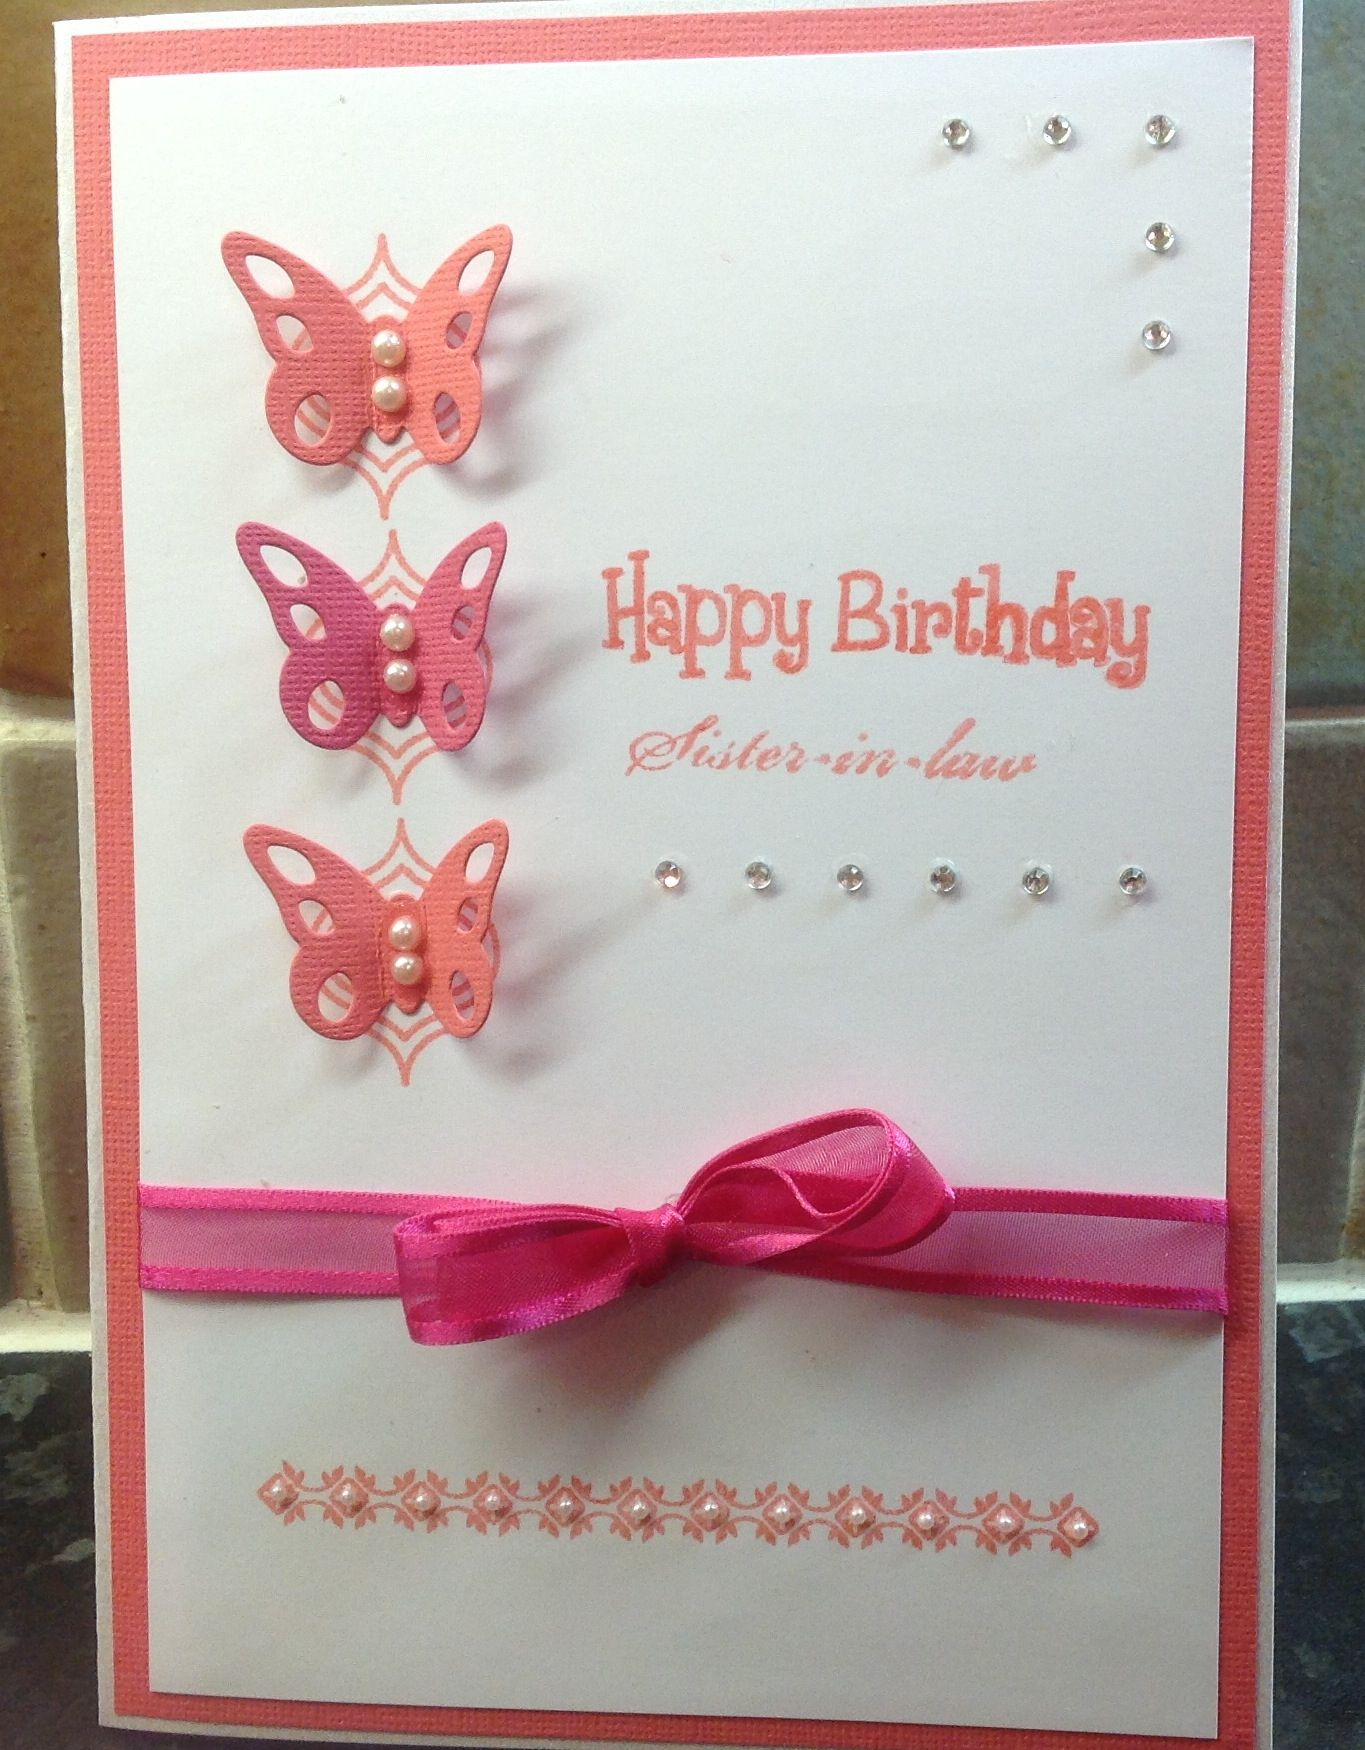 A Birthday Card For My Sister In Law